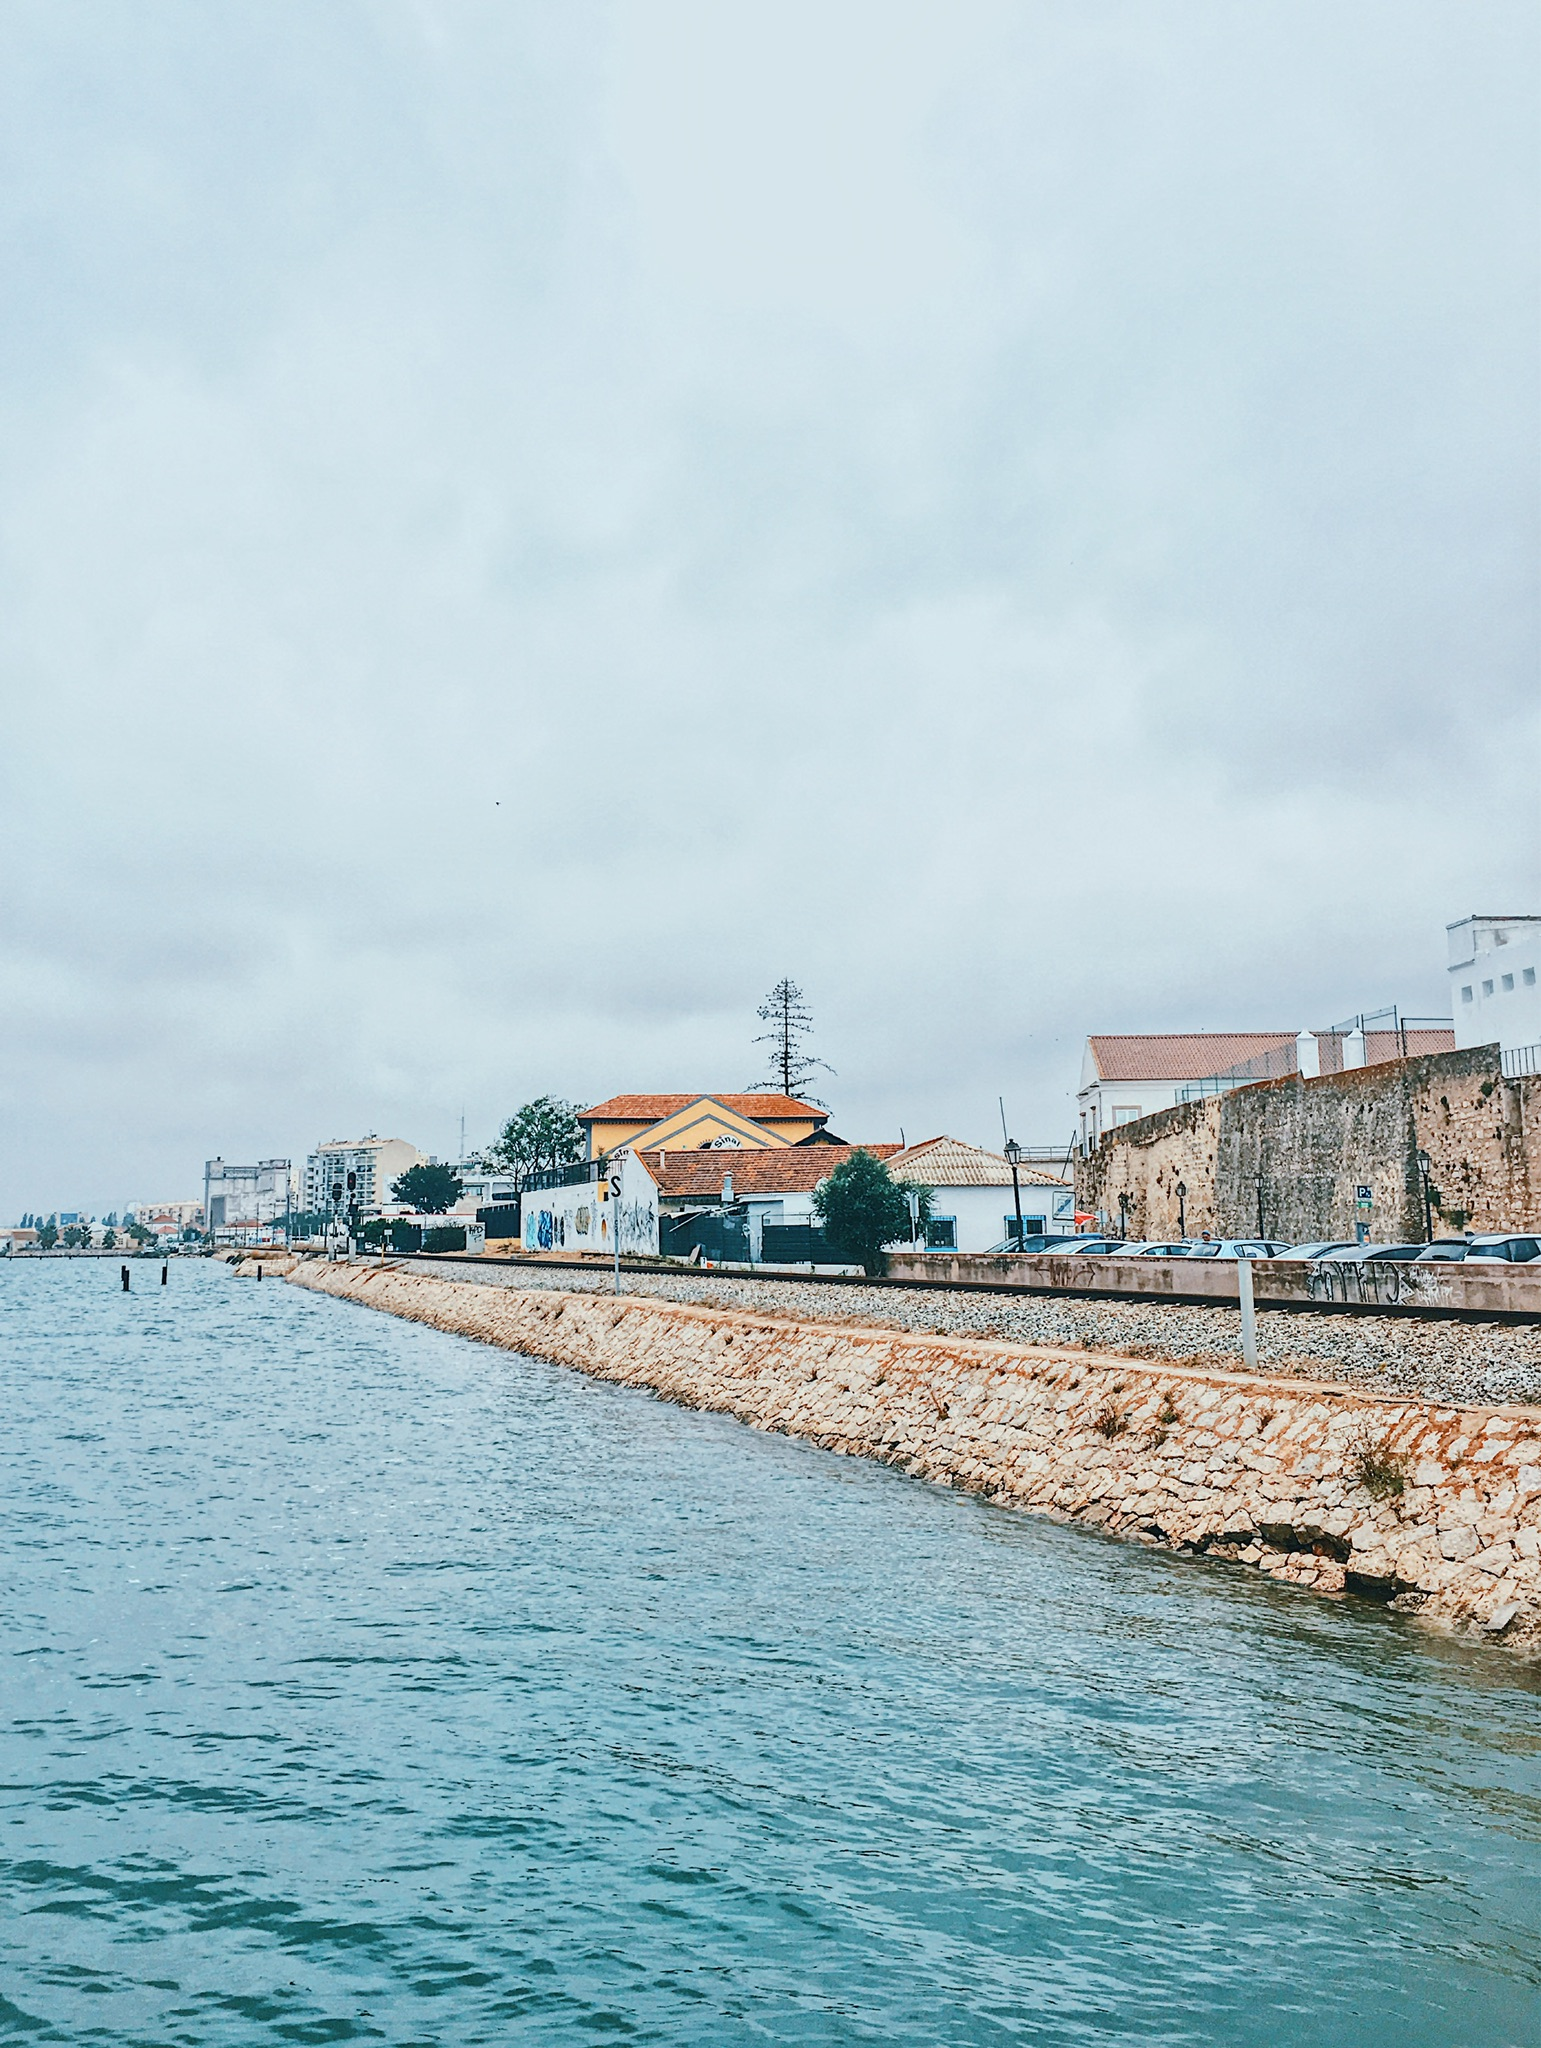 View of the town from the ferry dock